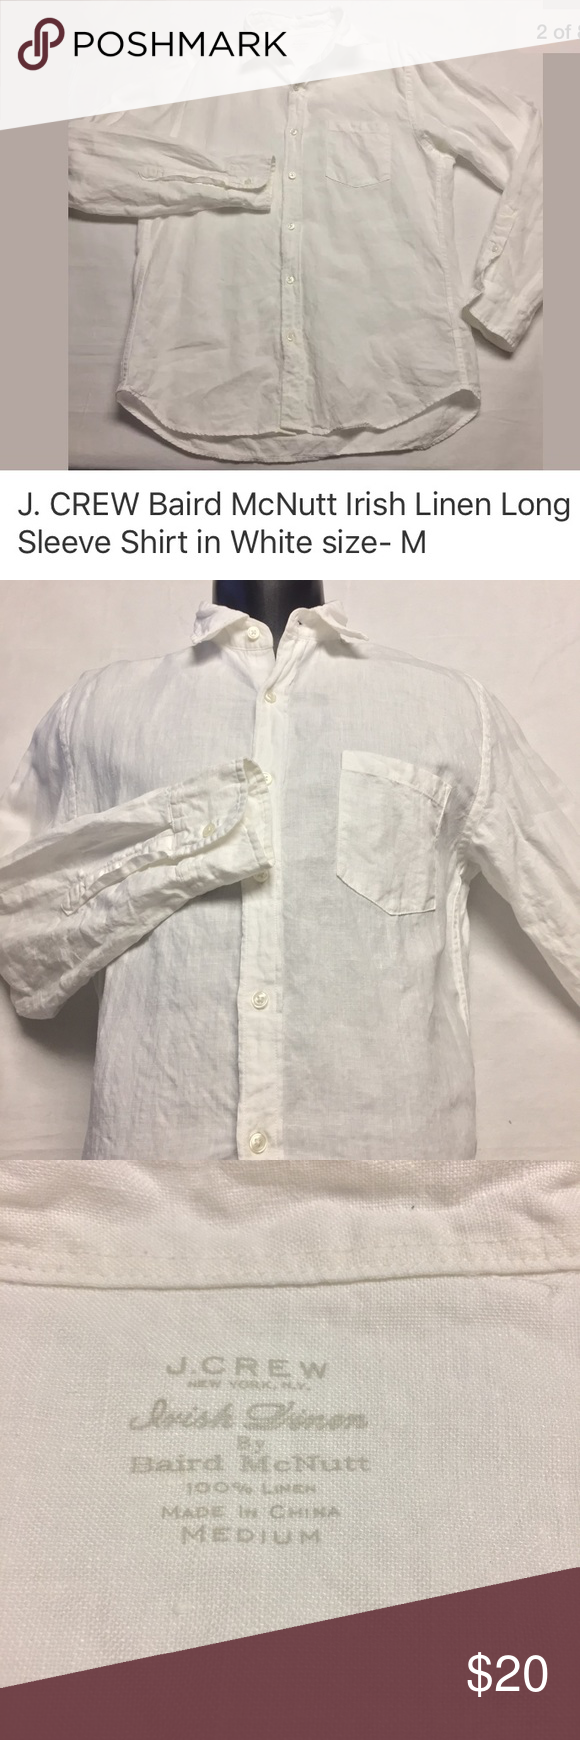 """J. Crew Baird McNutt Irish Linen shirt in White J. Crew Baird McNutt Irish Linen button up shirt in White.  EUC- NO rips, holes or funky smell. Laundered, clean and ready to ship.    Size on tag: M 20"""" armpit to armpit 24.5"""" shoulder to cuff 29"""" collar to the hem Here's more info. from J.Crew  IRISH LINEN SHIRT Item: 81531 $79.50 Product details: Climate control in cool, carefree Irish linen from Baird McNutt, an innovative Ballymena mill established in 1912  Regular fit Irish linen Point…"""